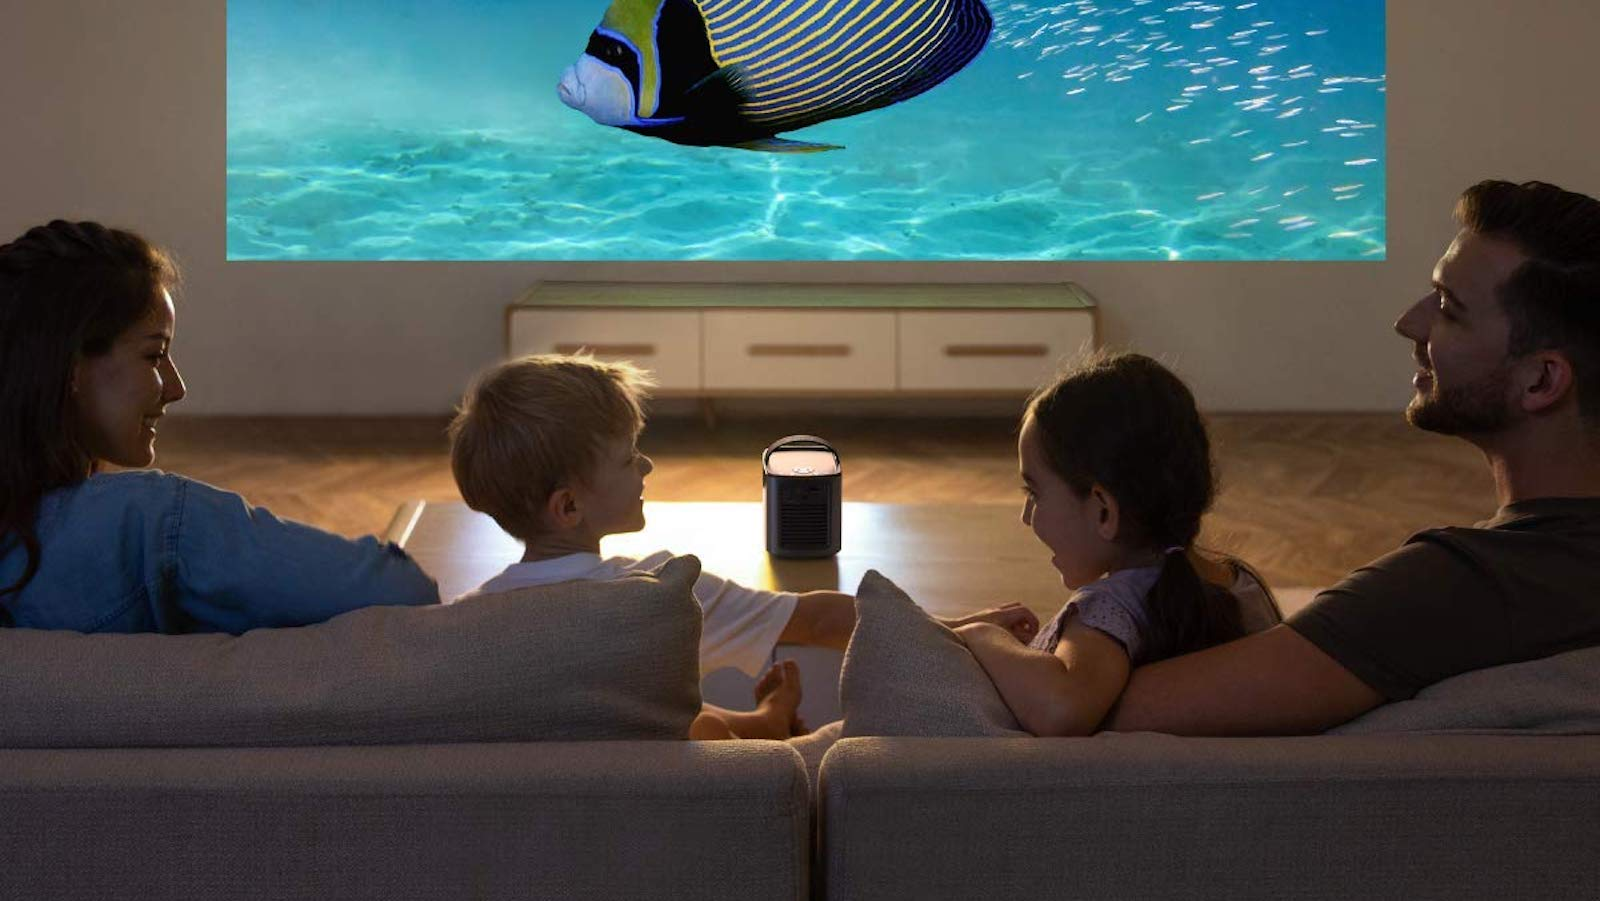 Anker Nebula Mars II Pro portable projector uses IntelliBright tech to emit 500 lumens